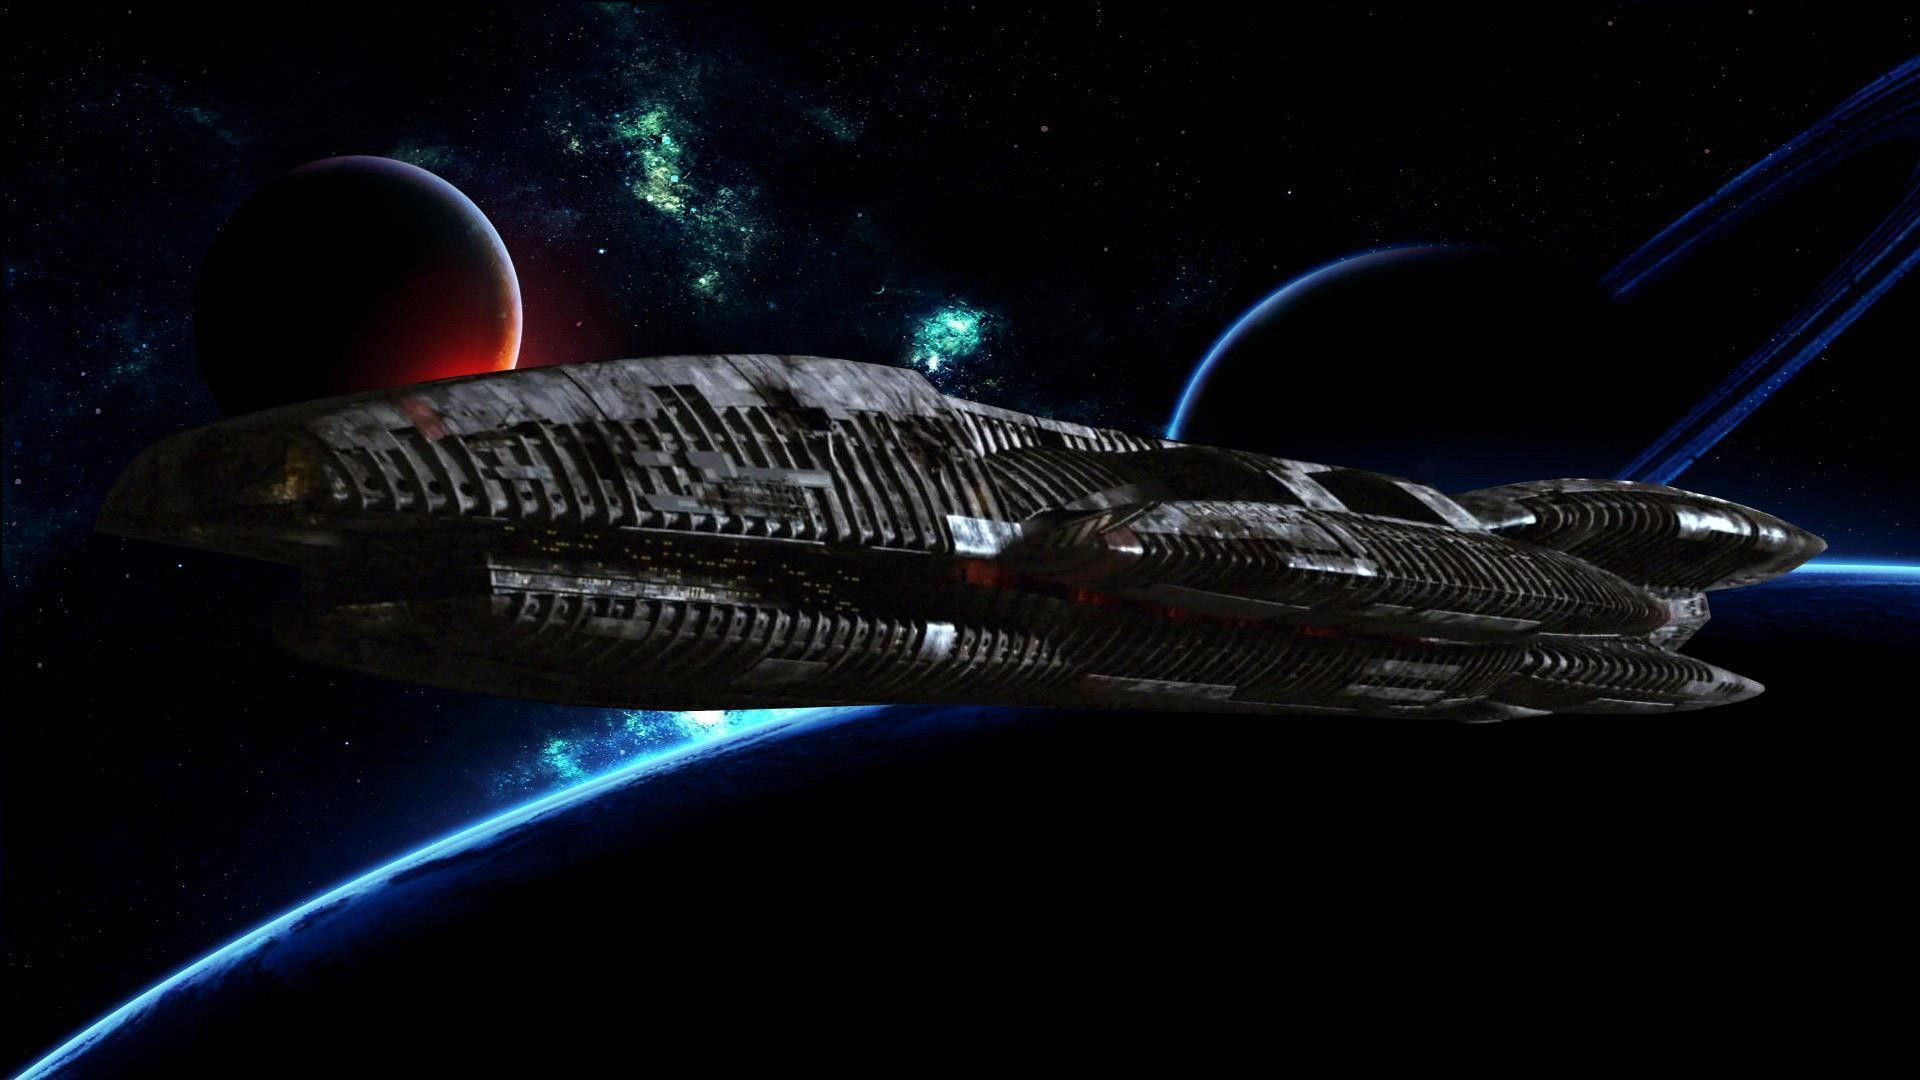 Battlestar Galactica Wallpapers Top Free Battlestar Galactica Backgrounds Wallpaperaccess